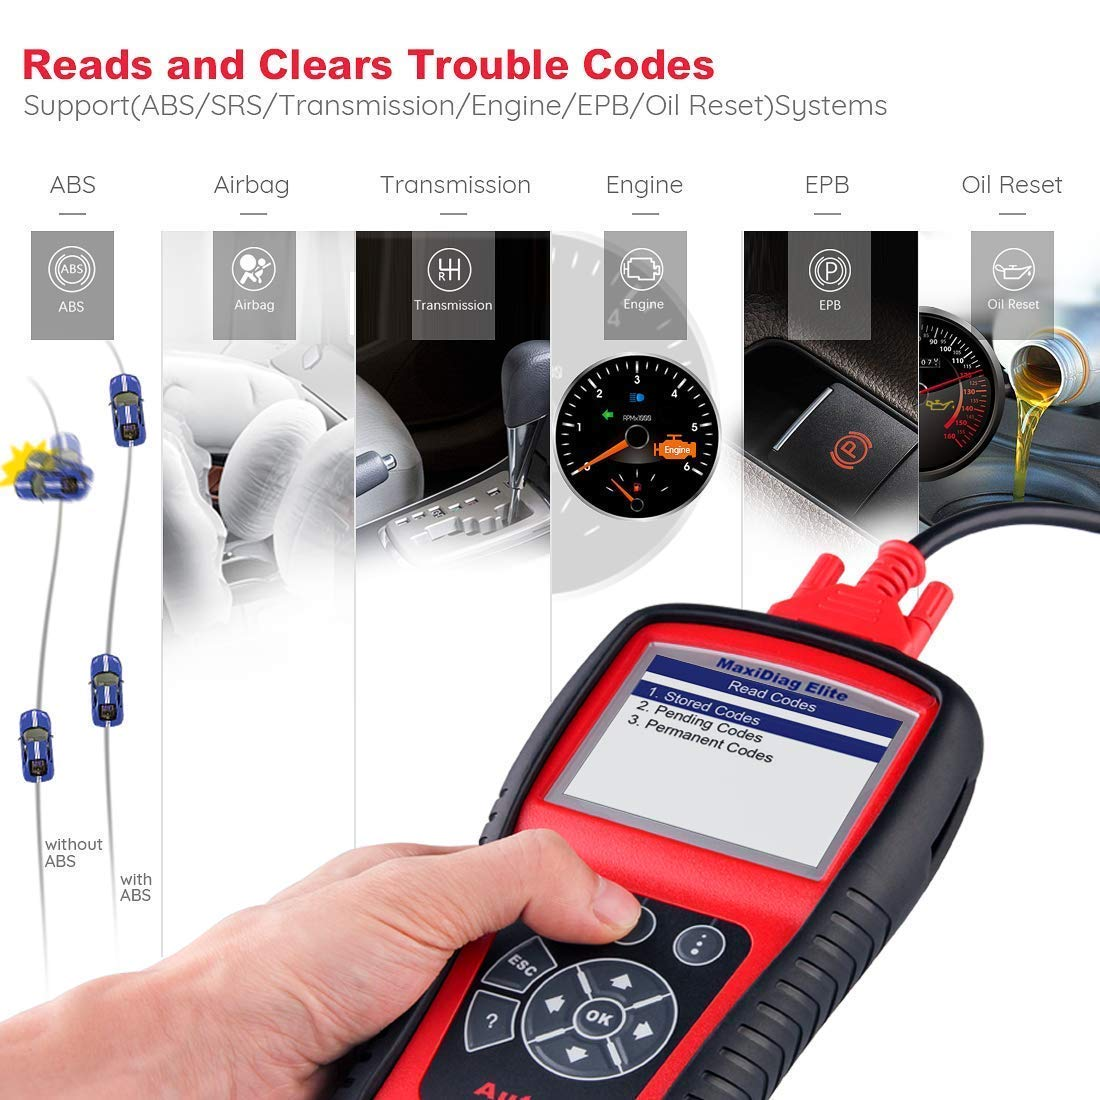 Amazon.com: Autel MaxiDiag MD802 OBDII/EOBD Diagnostic tool for All  Available Systems, Engine, ABS, SRS, Transmission, body, Powertrain,  Chassis and much ...